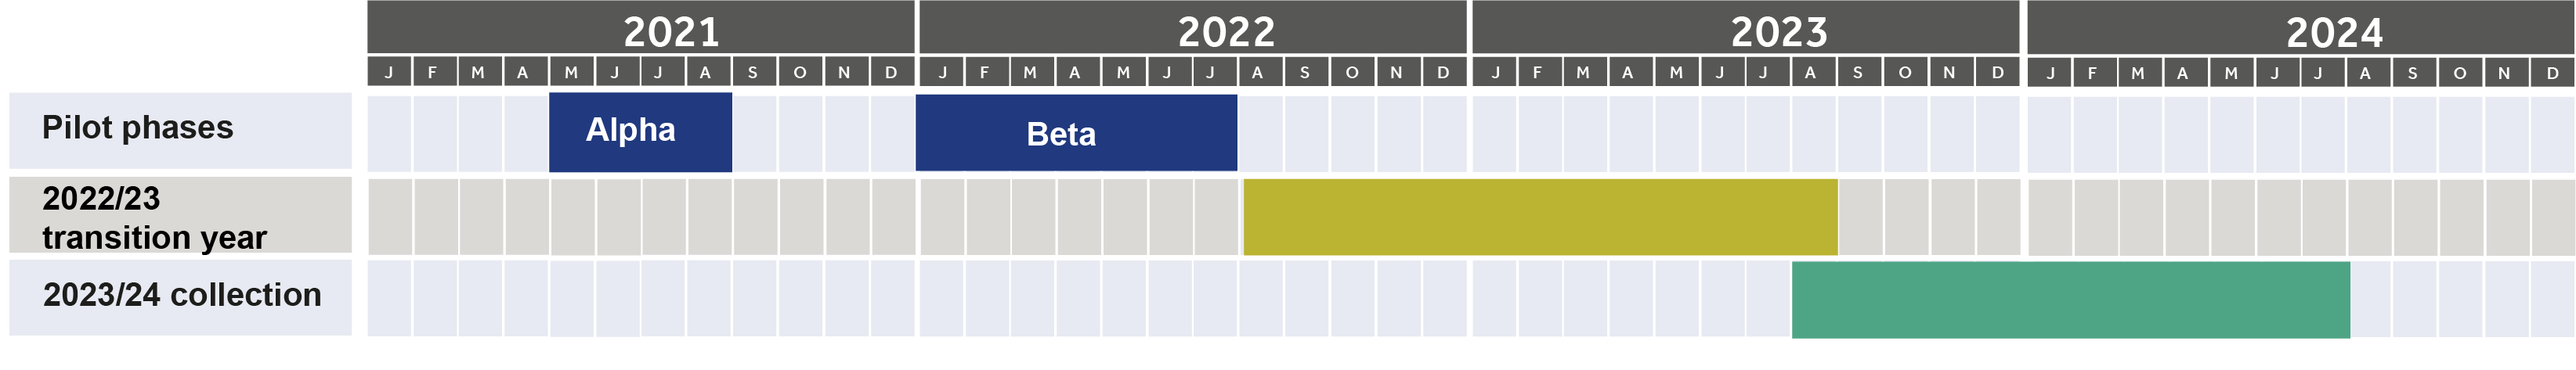 Data Futures timeline graphic for 2021-2024, including Alpha and Beta pilot phases in 2021, Data Futures transition year 2022/23 and 2023/24 collection